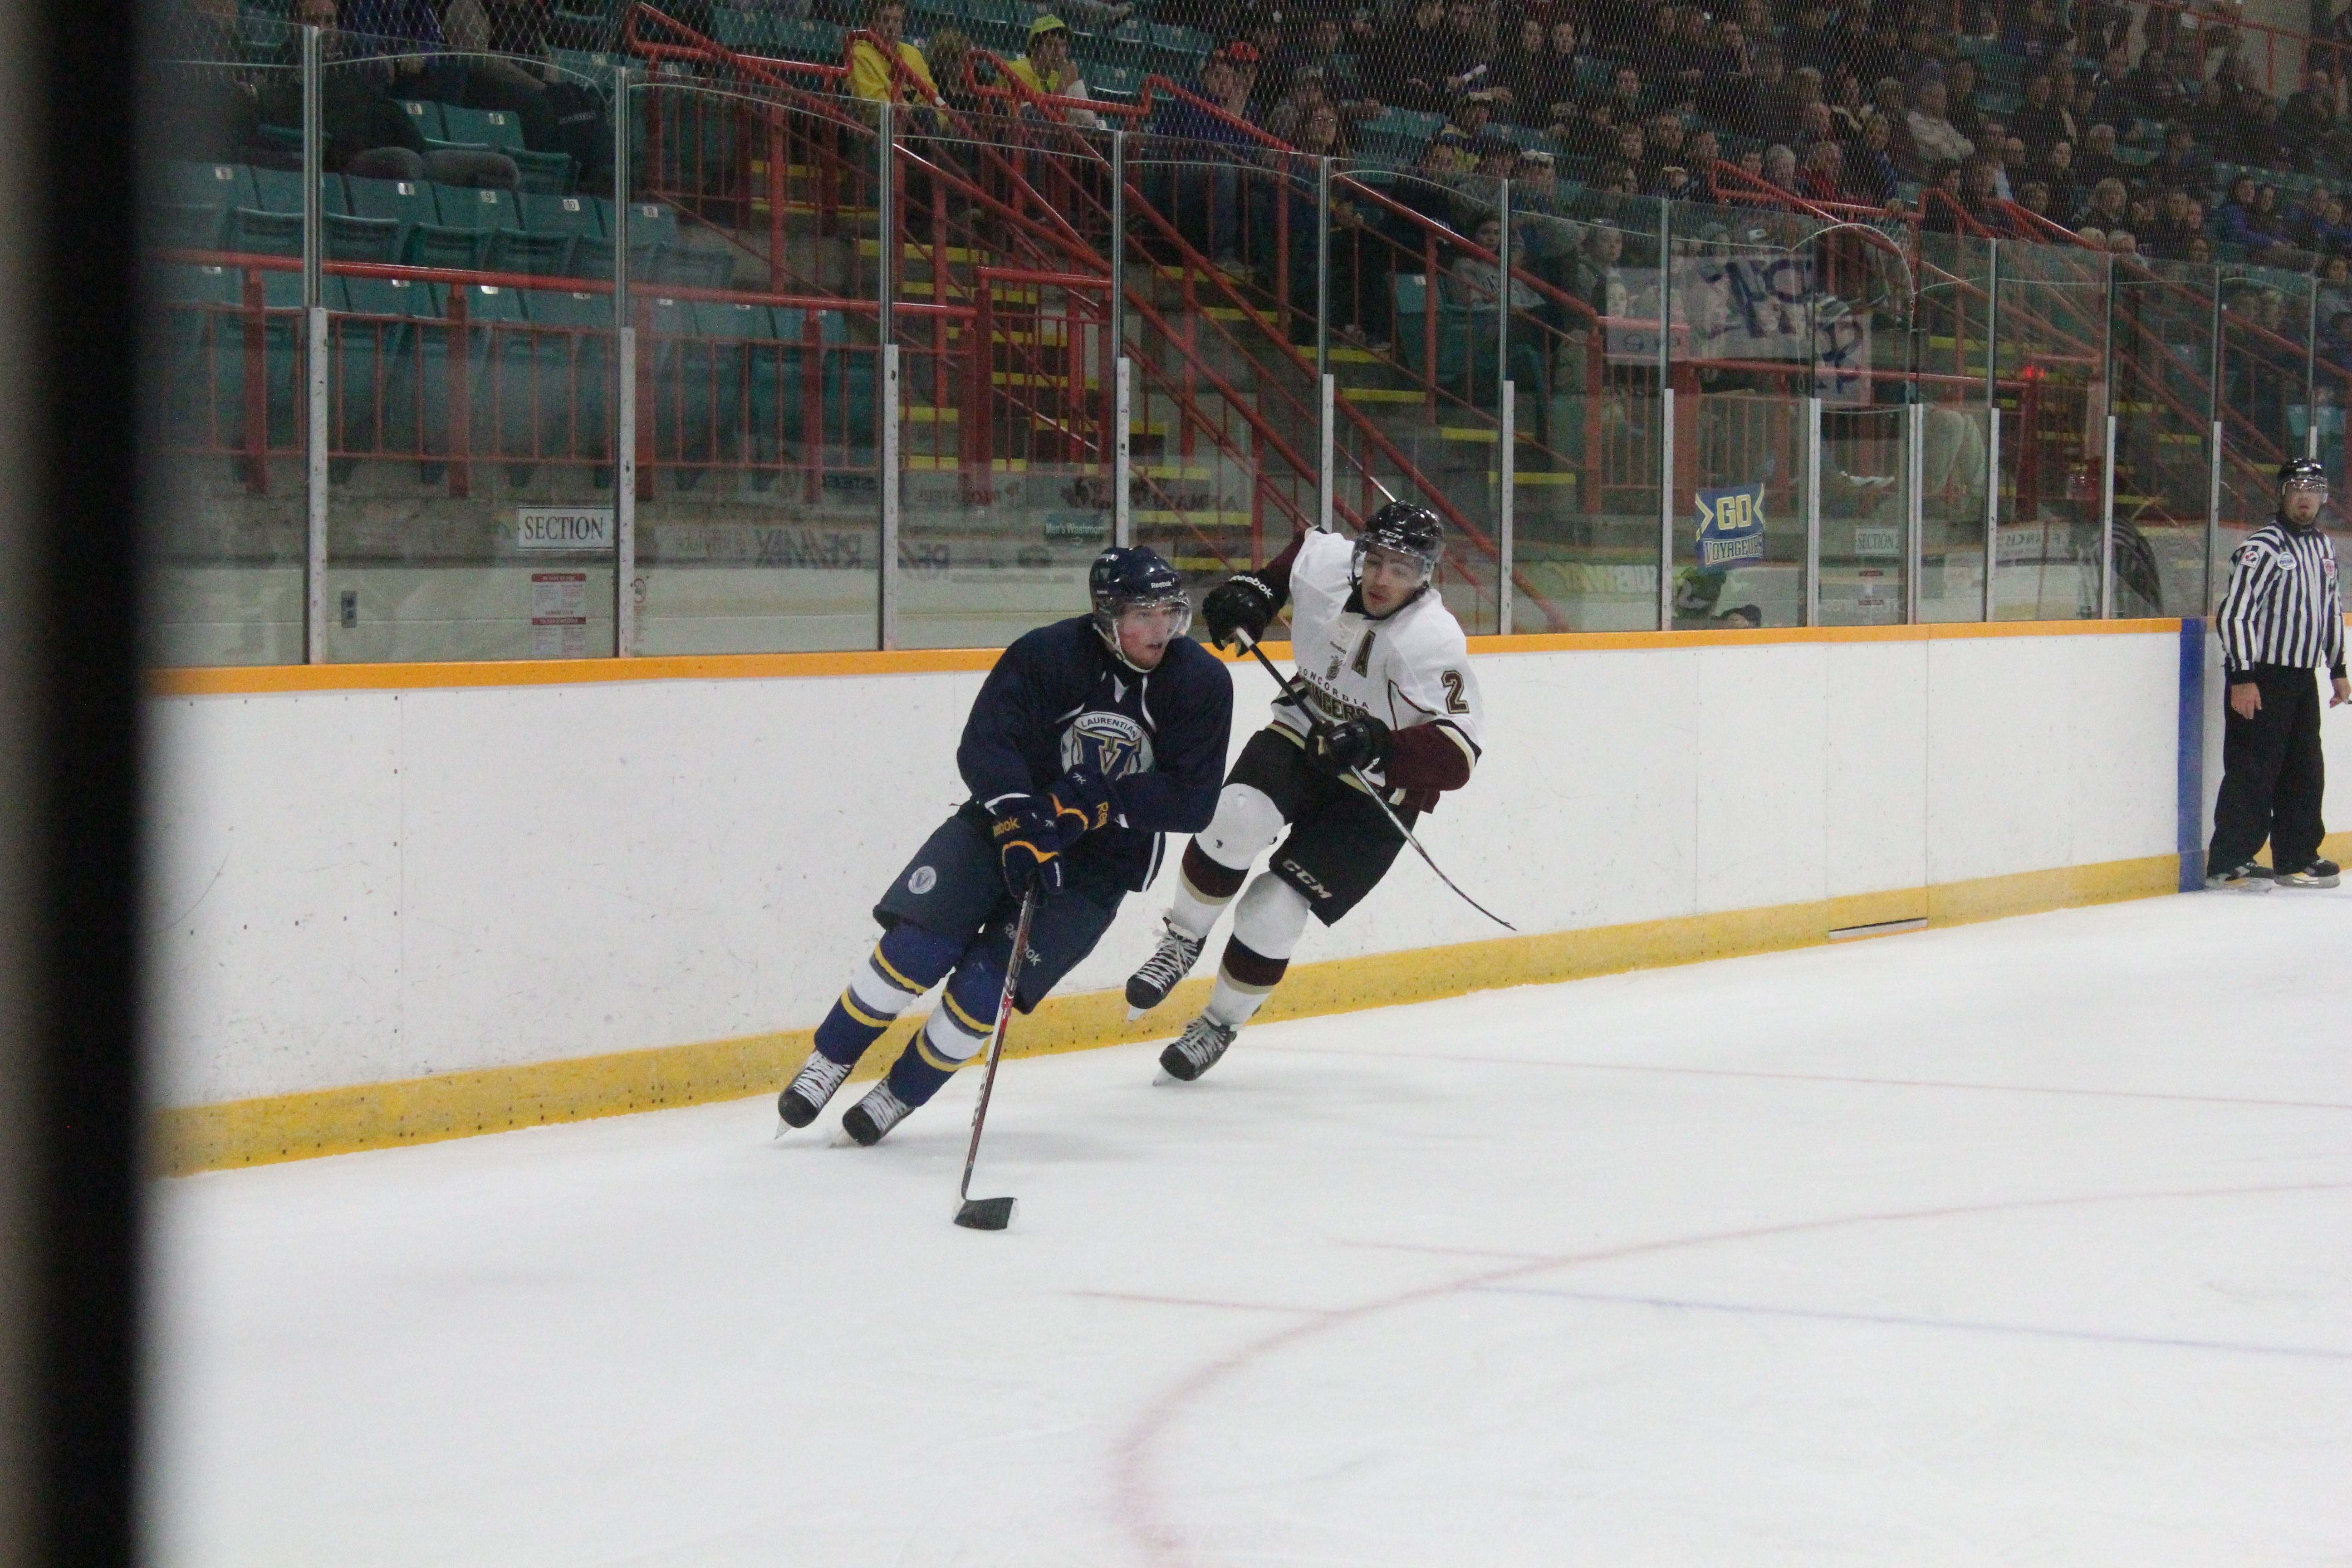 Laurentian's men's team playing against Concordia. Photo by Gabriel Rodrigues.